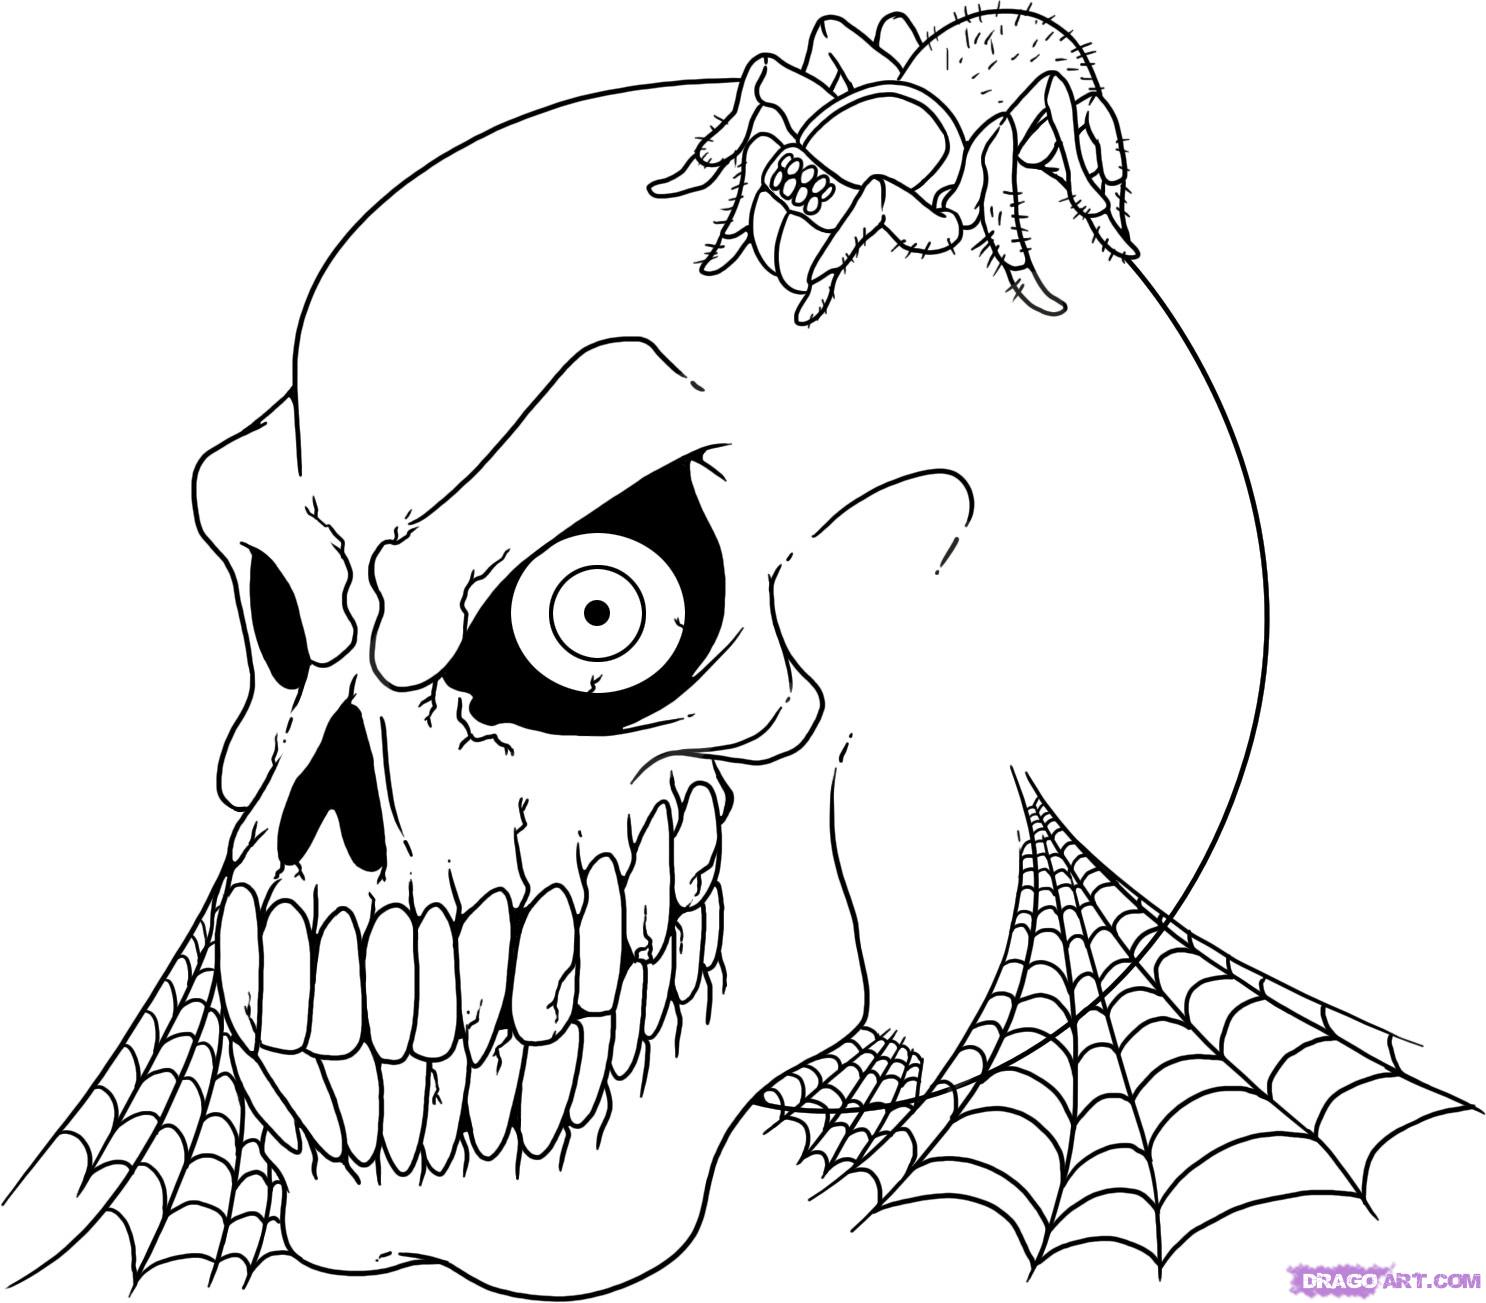 1486x1303 Cool Design Skeleton Coloring Pages To Print Printable For Kids